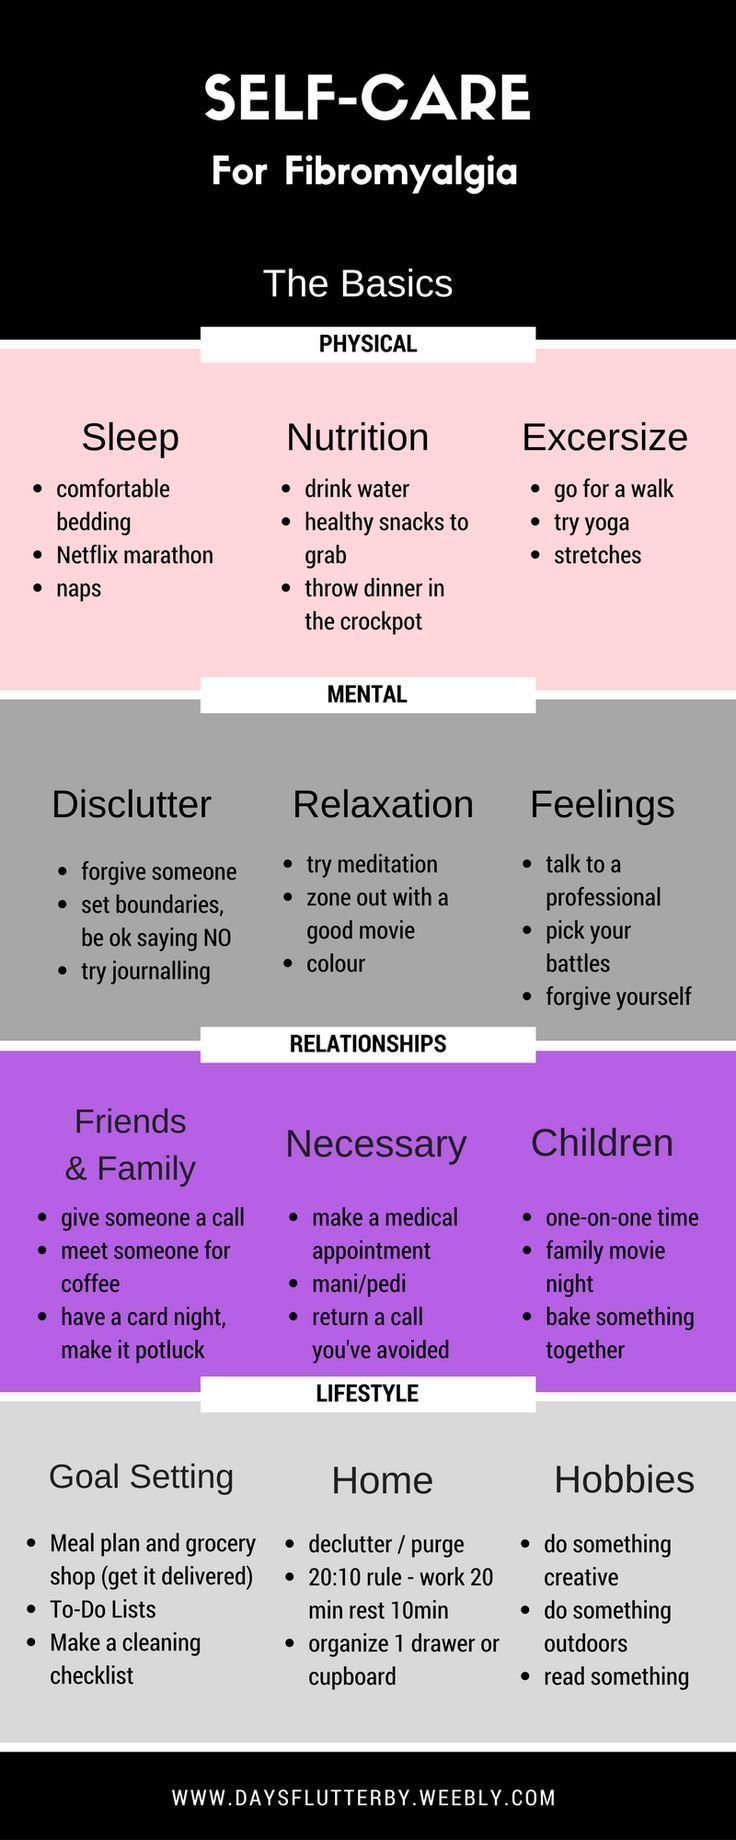 Days Flutterby - Self-Care for Fibromyalgia, the Basics Infograph